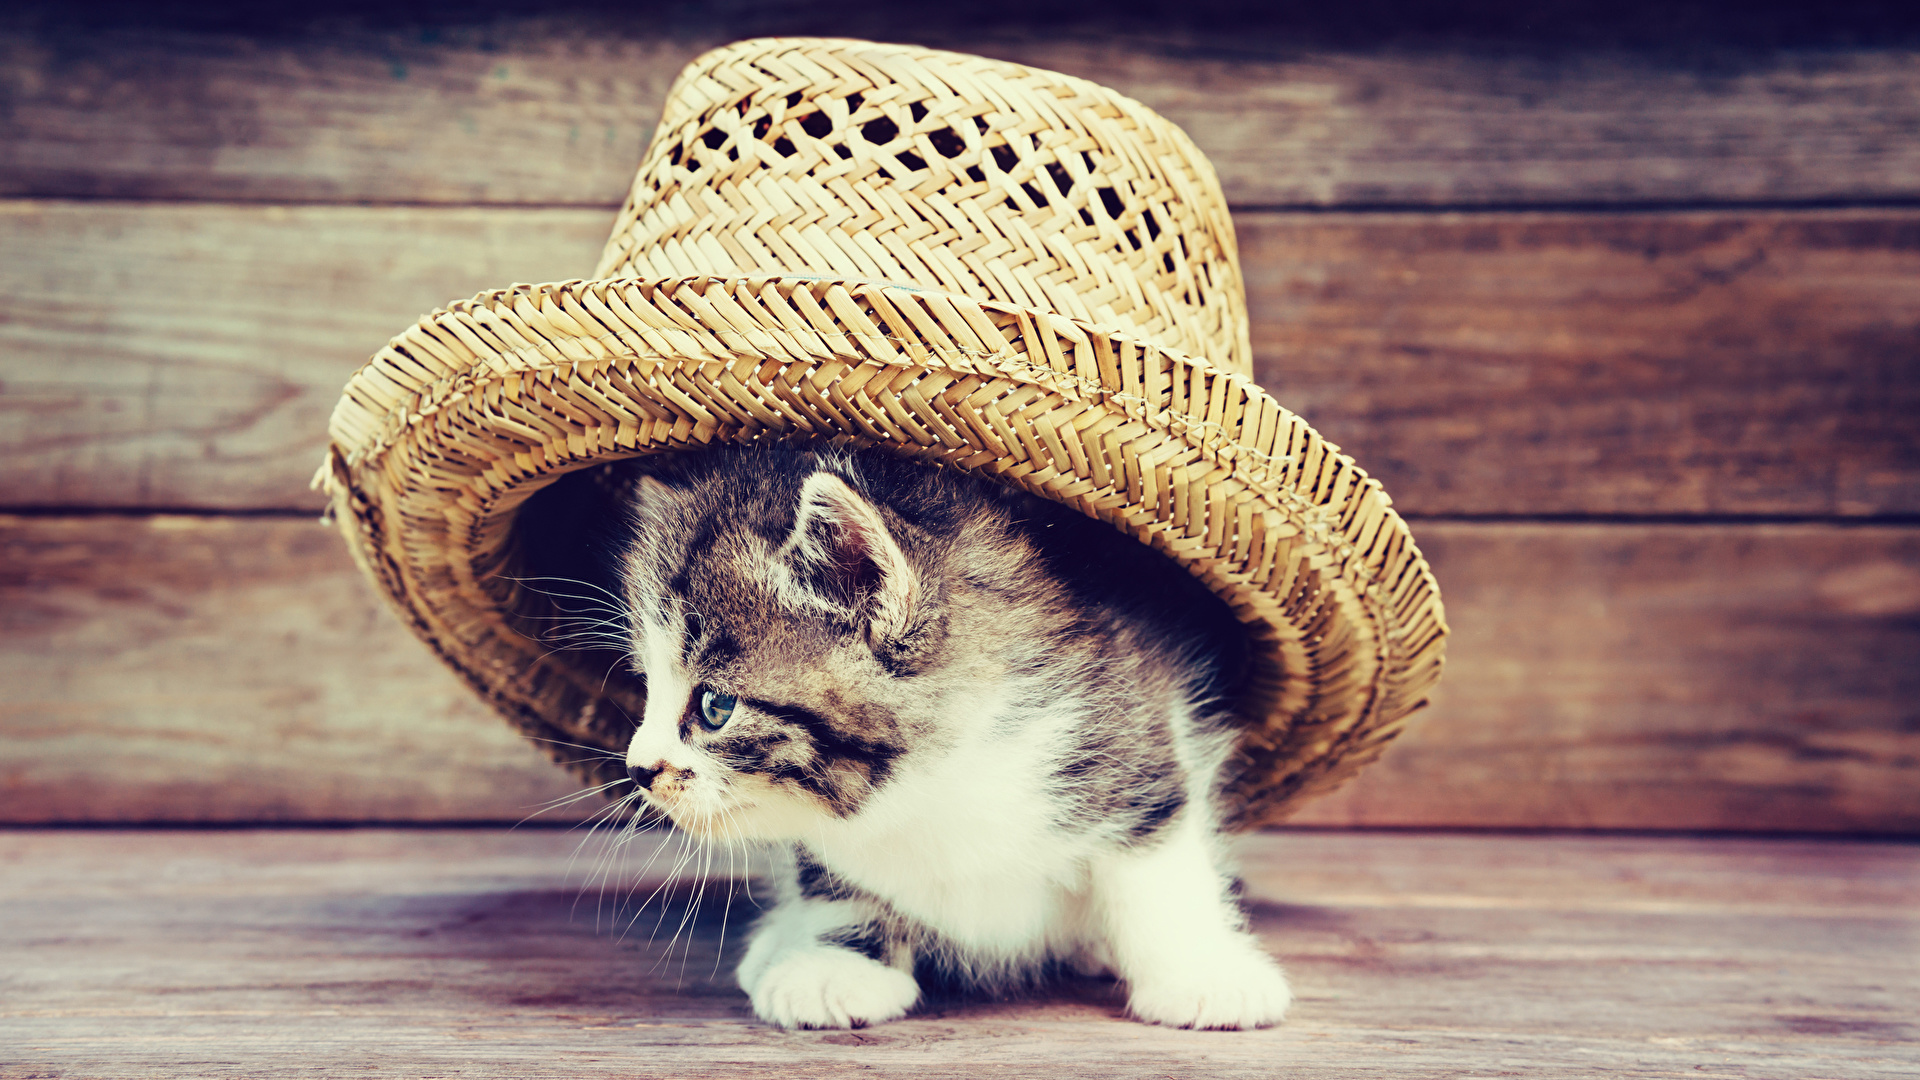 Desktop Wallpapers Kitty Cat Cat Hat Animal Wood Planks 1920x1080